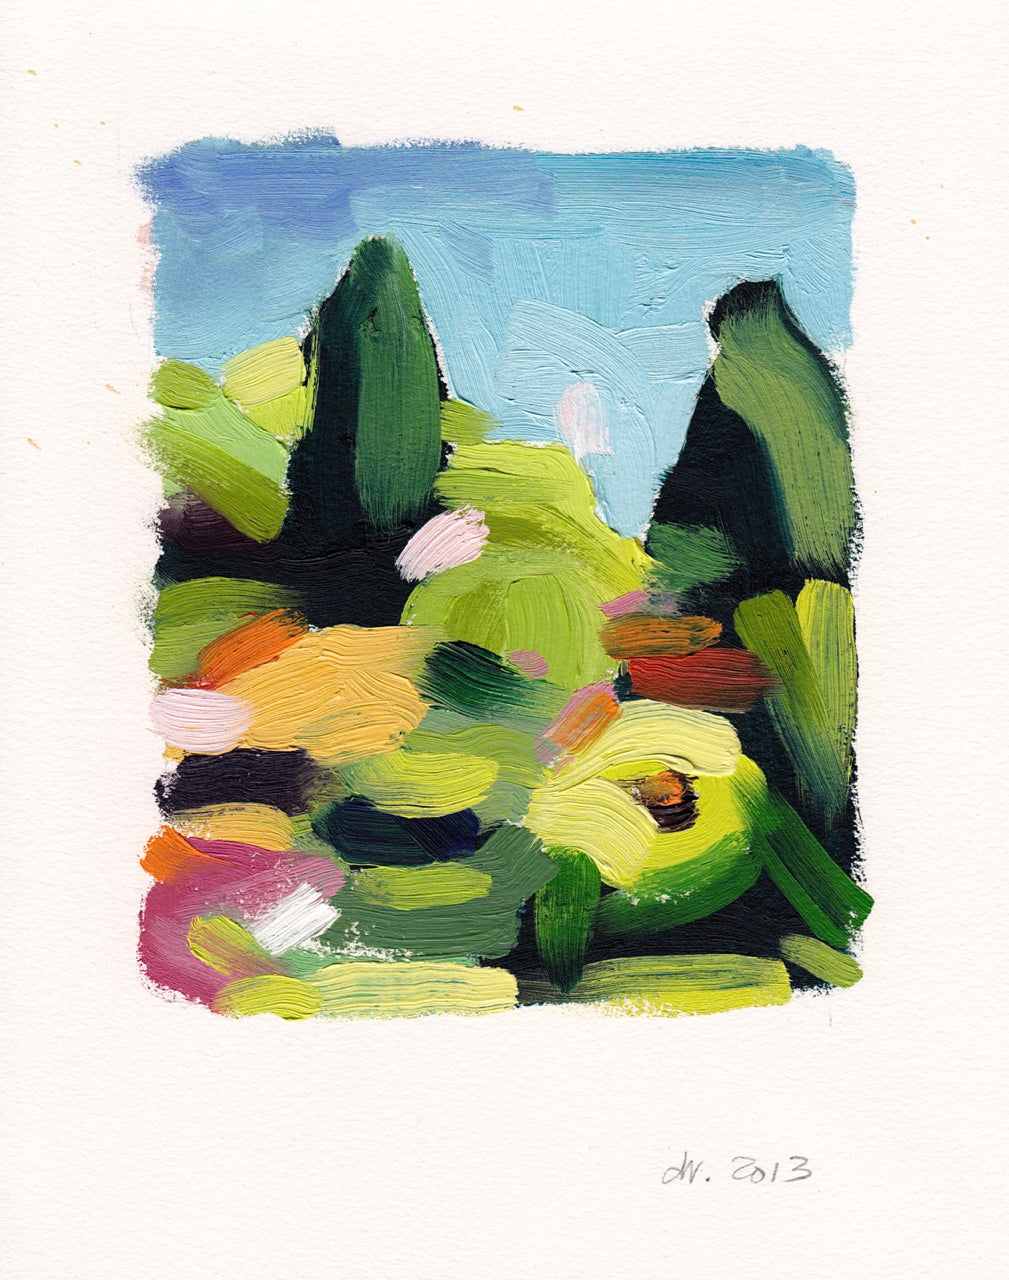 Landscape (Arboretum #5) Paintings David Coleridge Ryan- Portfolio2 Gallery